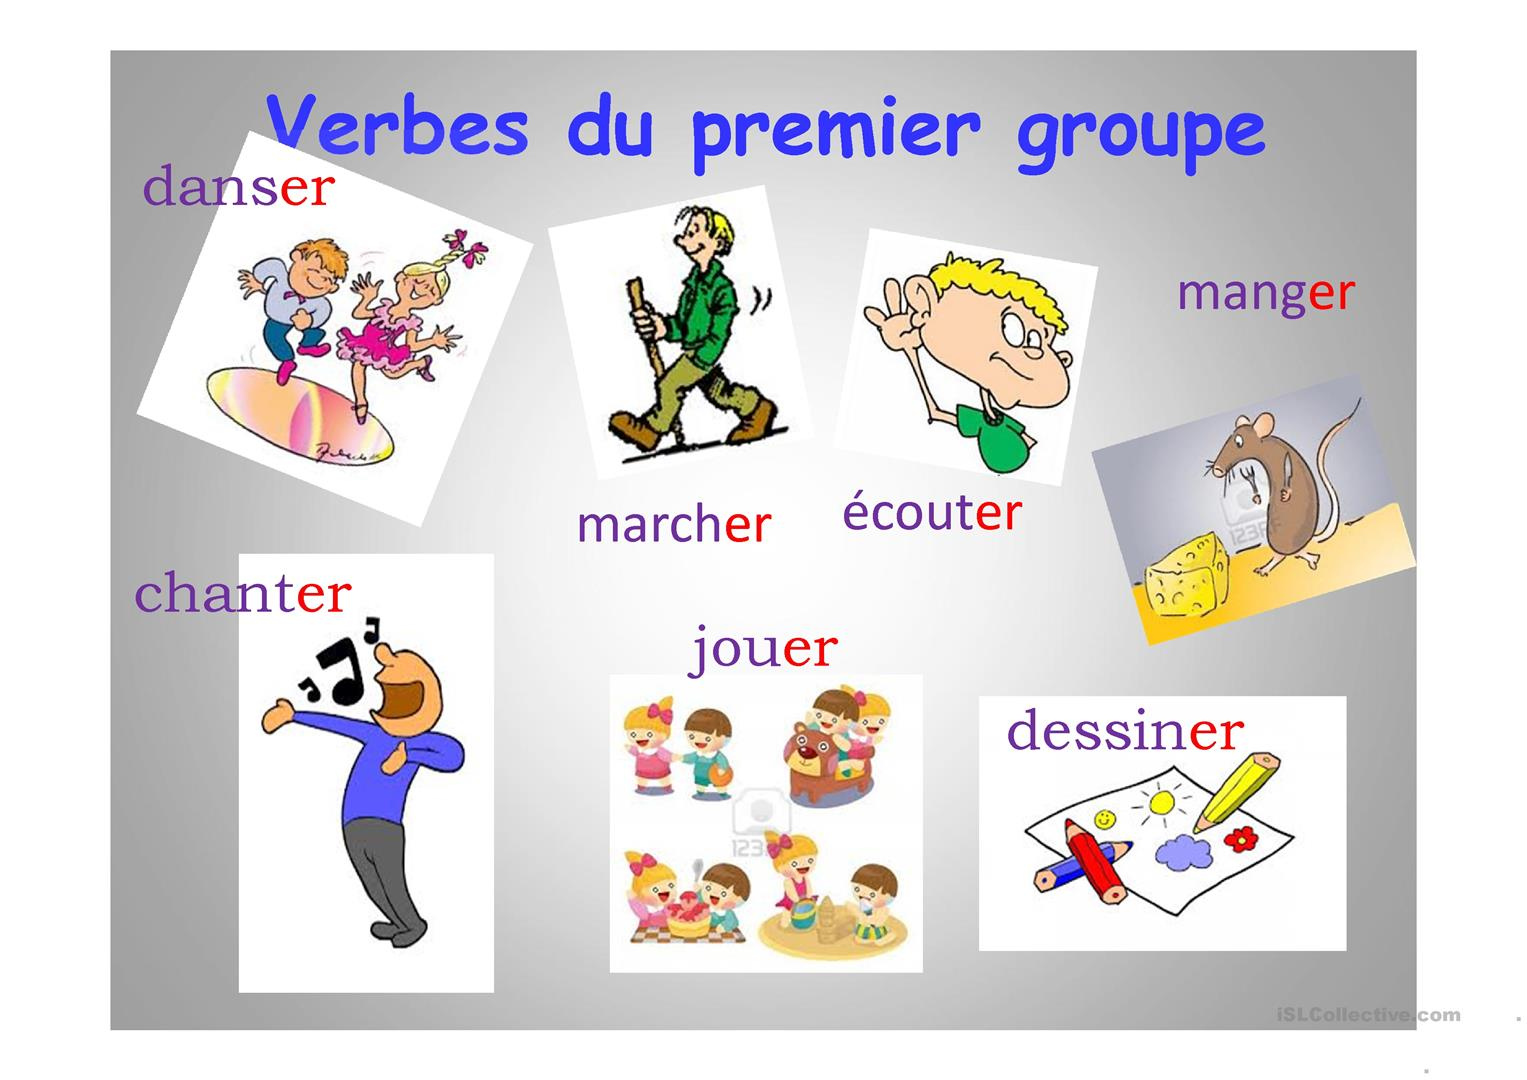 Verbes du premier groupe fiche d'exercices - Free ESL projectable worksheets made by teachers